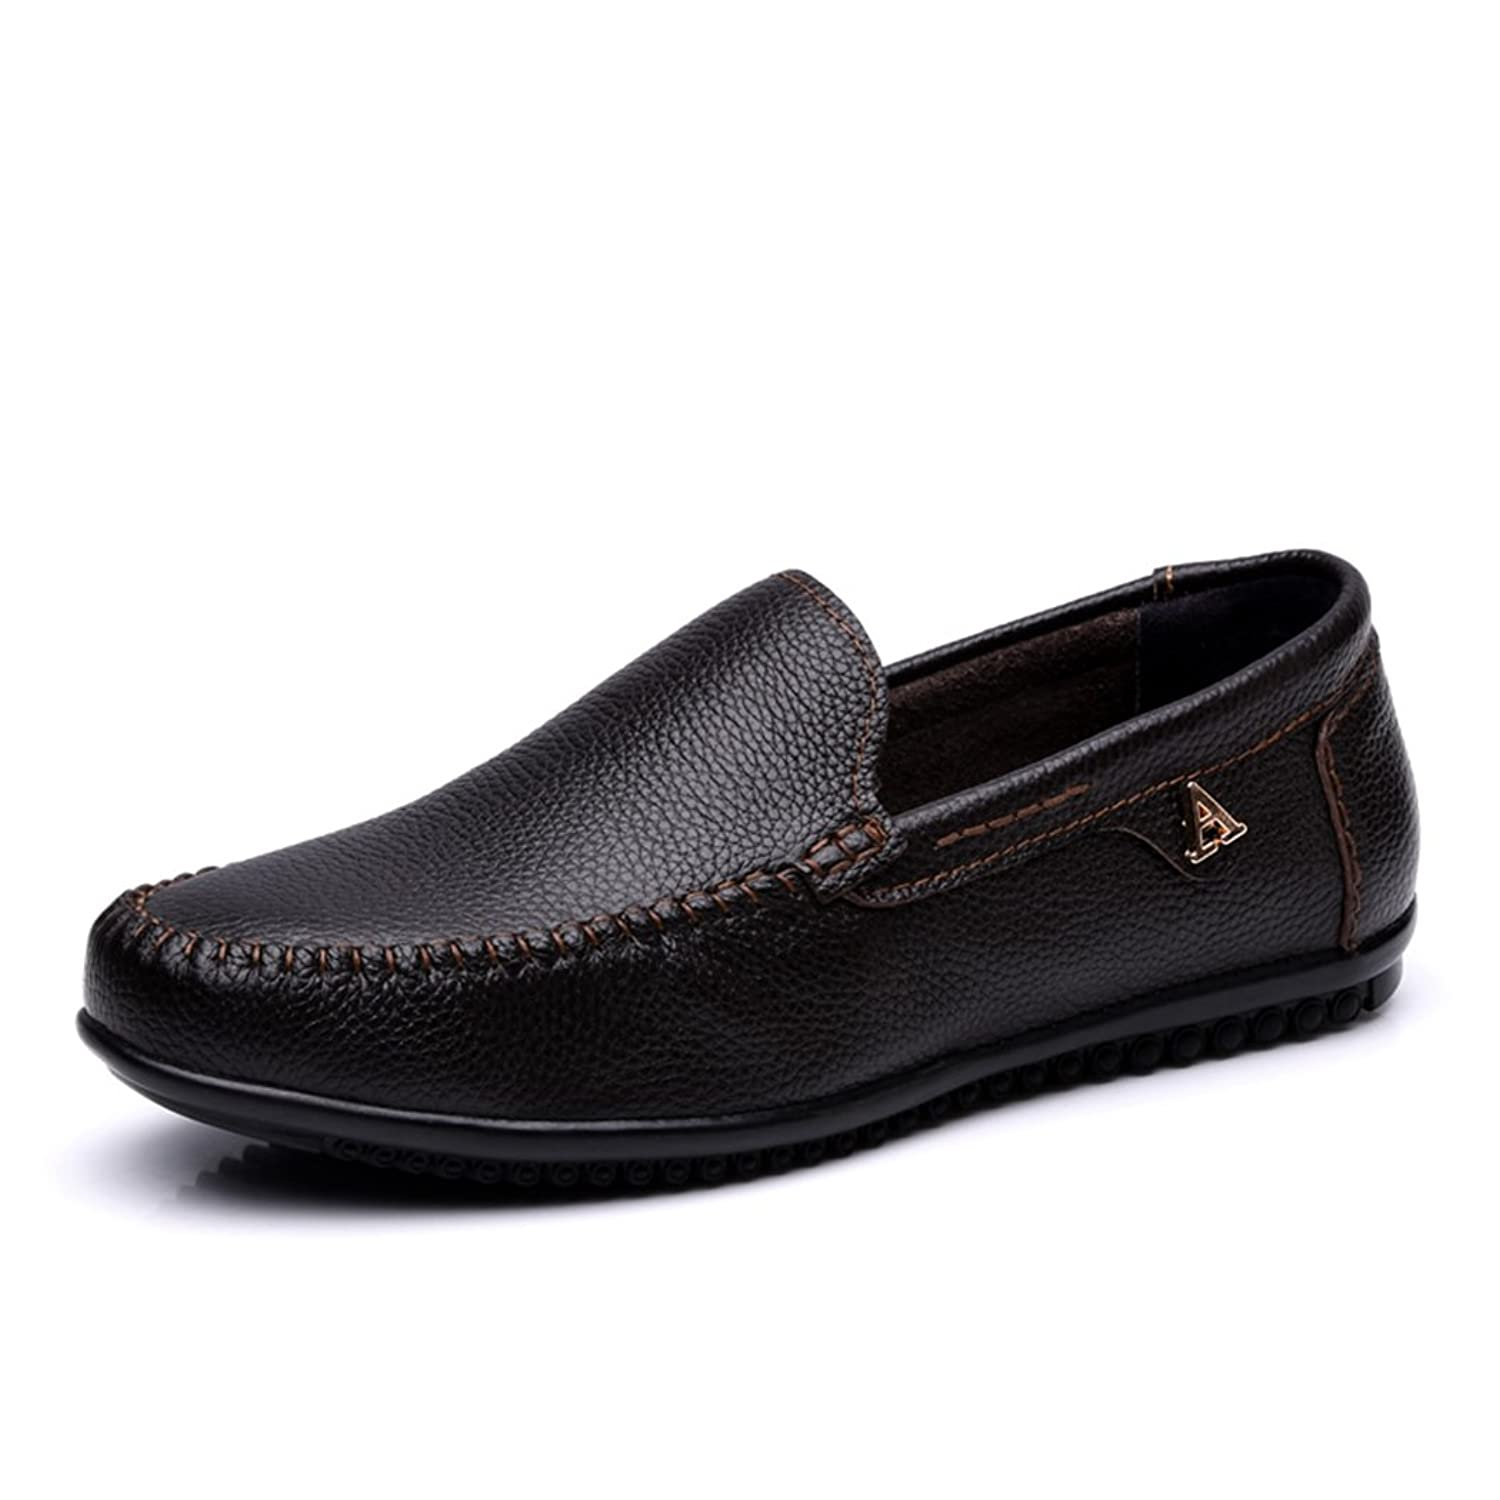 Men's Loafers Casual Slip Ons Driving Office Work School Shoes Flats First Layer Chocolate US6.5